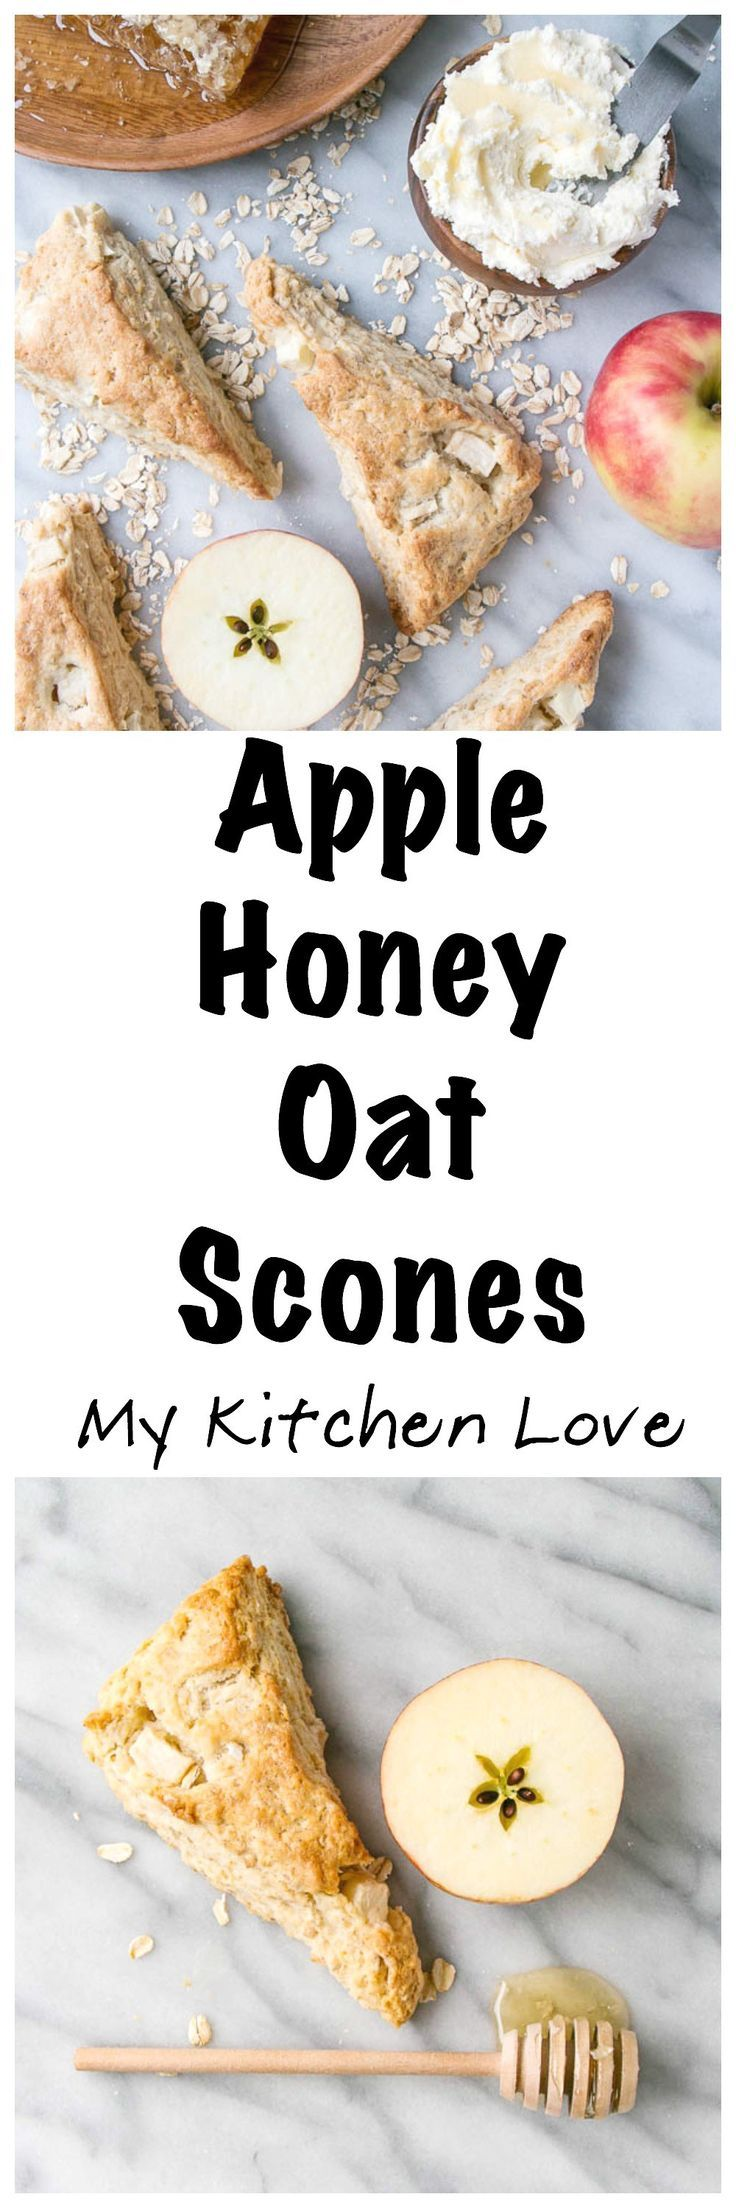 Apple and Honey Oat Scones | My Kitchen Love